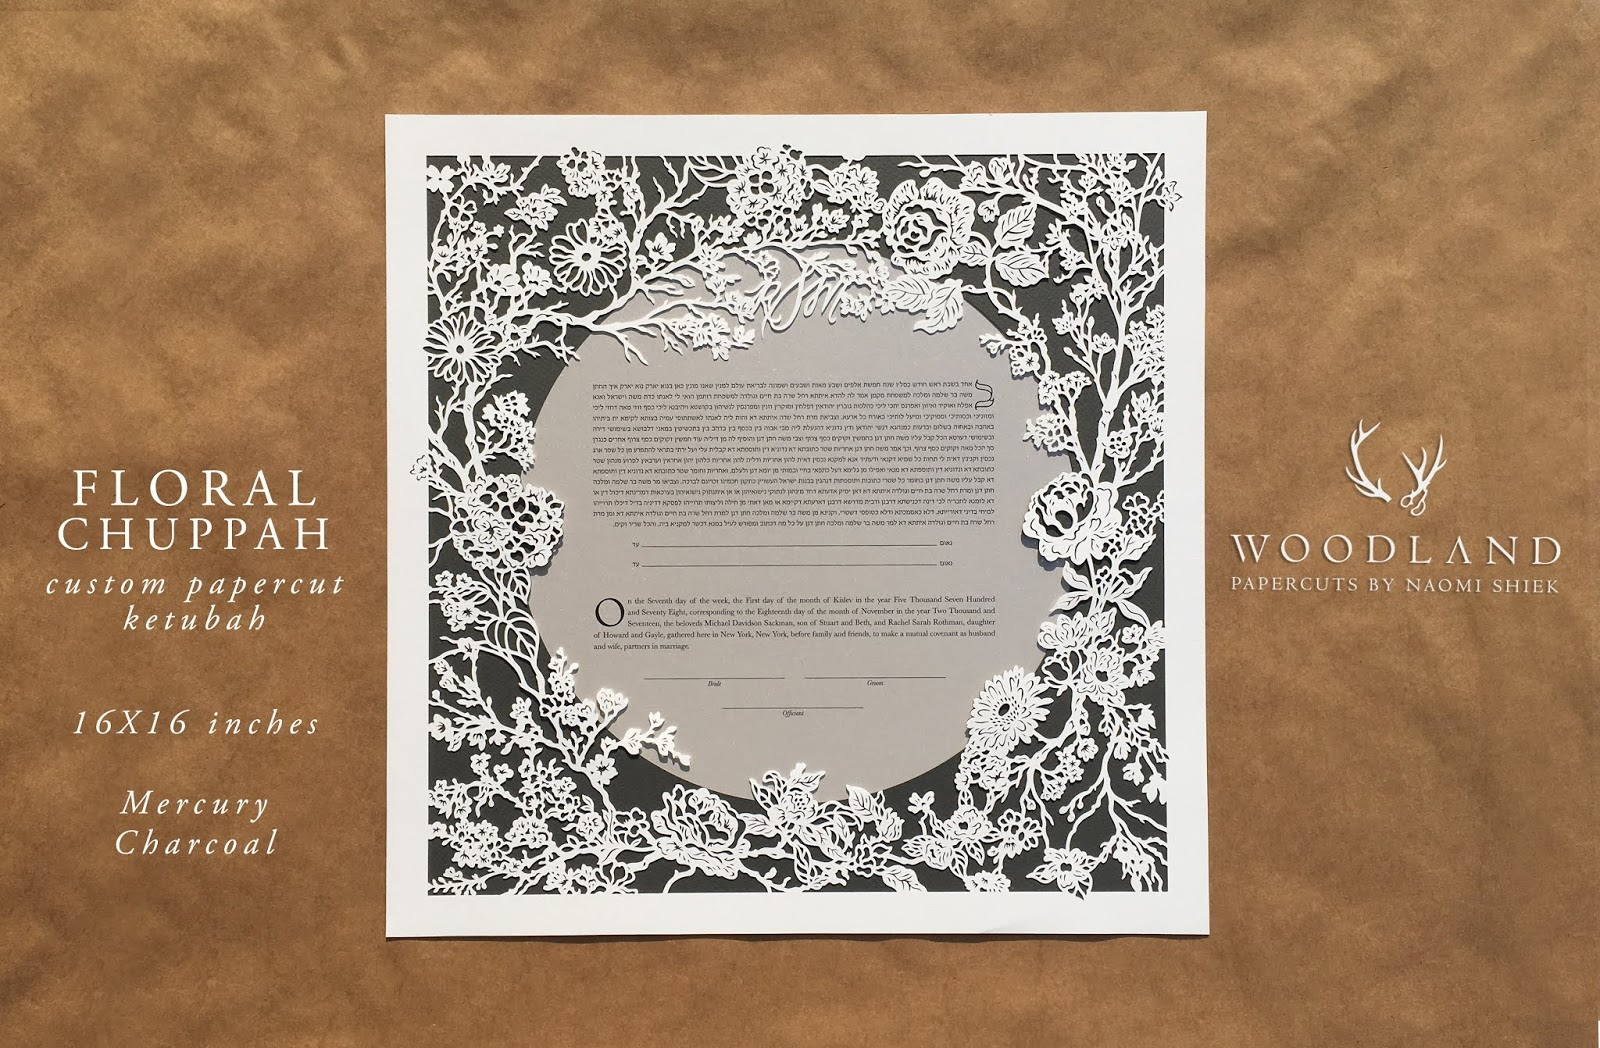 Handmade papercut ketubah by Naomi Shiek for weddings